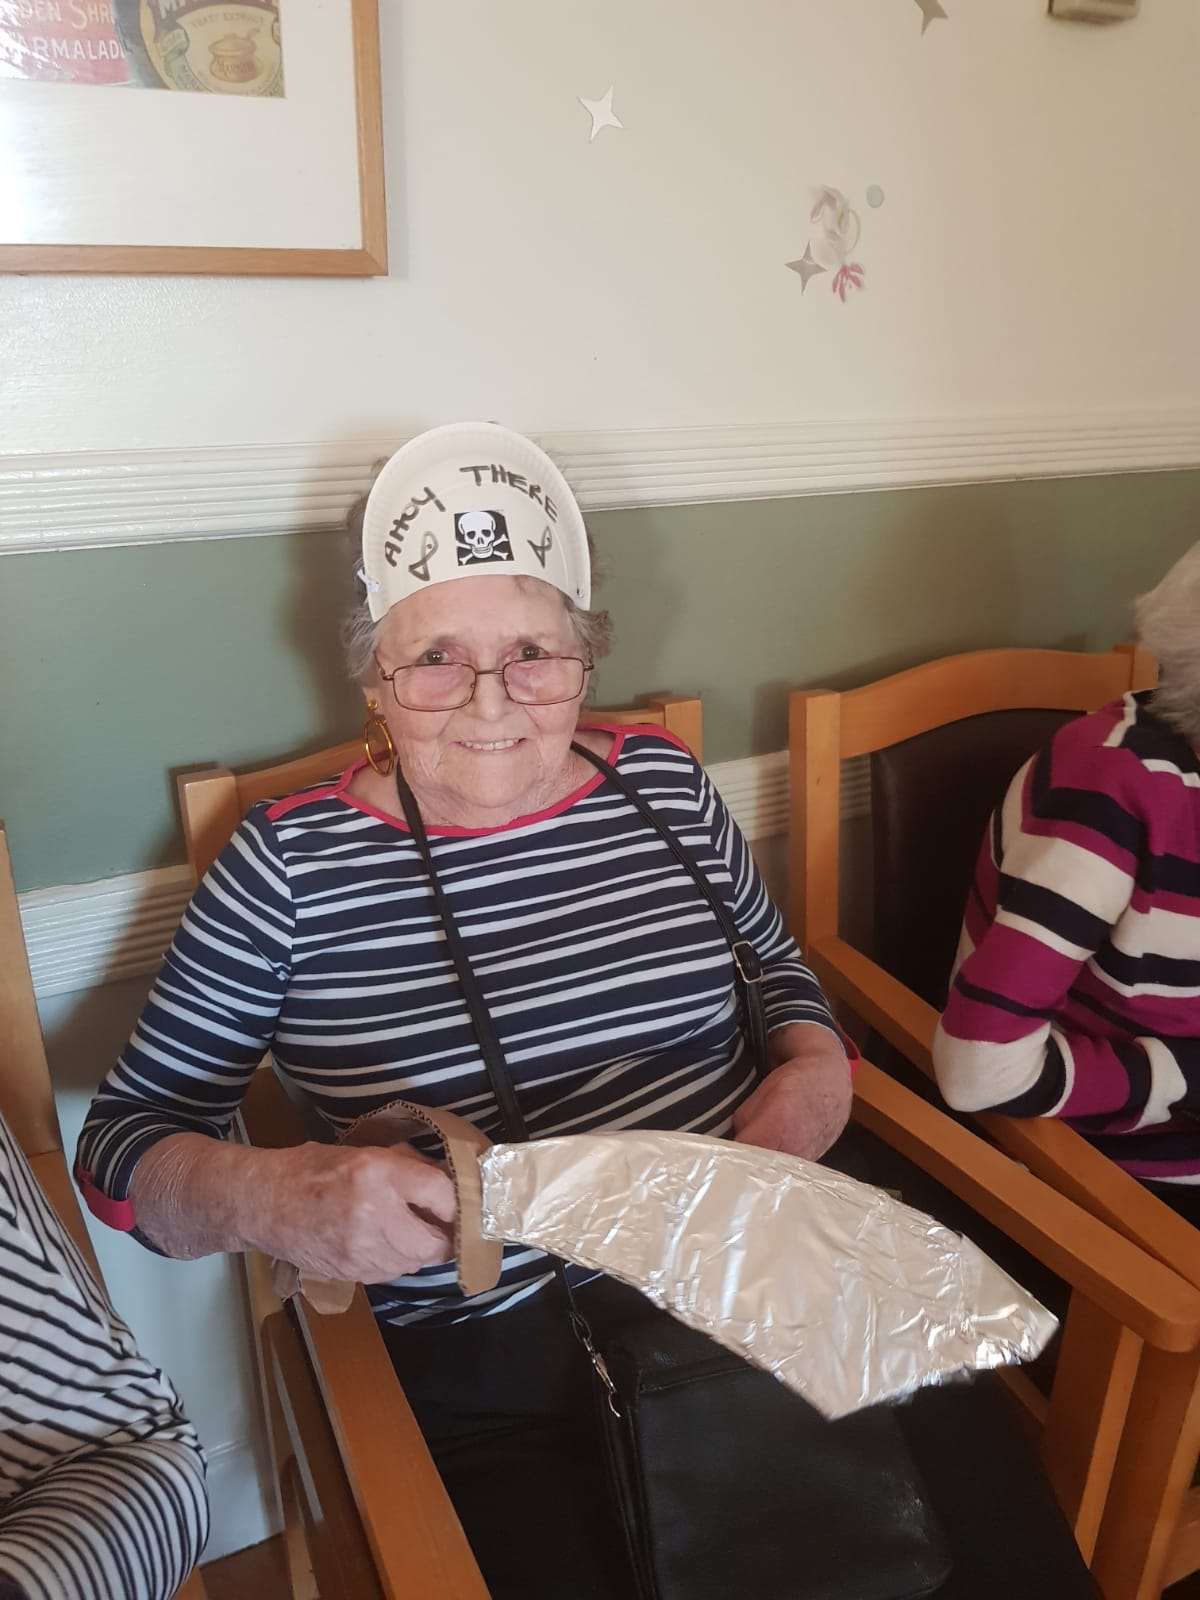 Pirate at Elizabeth Court: Key Healthcare is dedicated to caring for elderly residents in safe. We have multiple dementia care homes including our care home middlesbrough, our care home St. Helen and care home saltburn. We excel in monitoring and improving care levels.